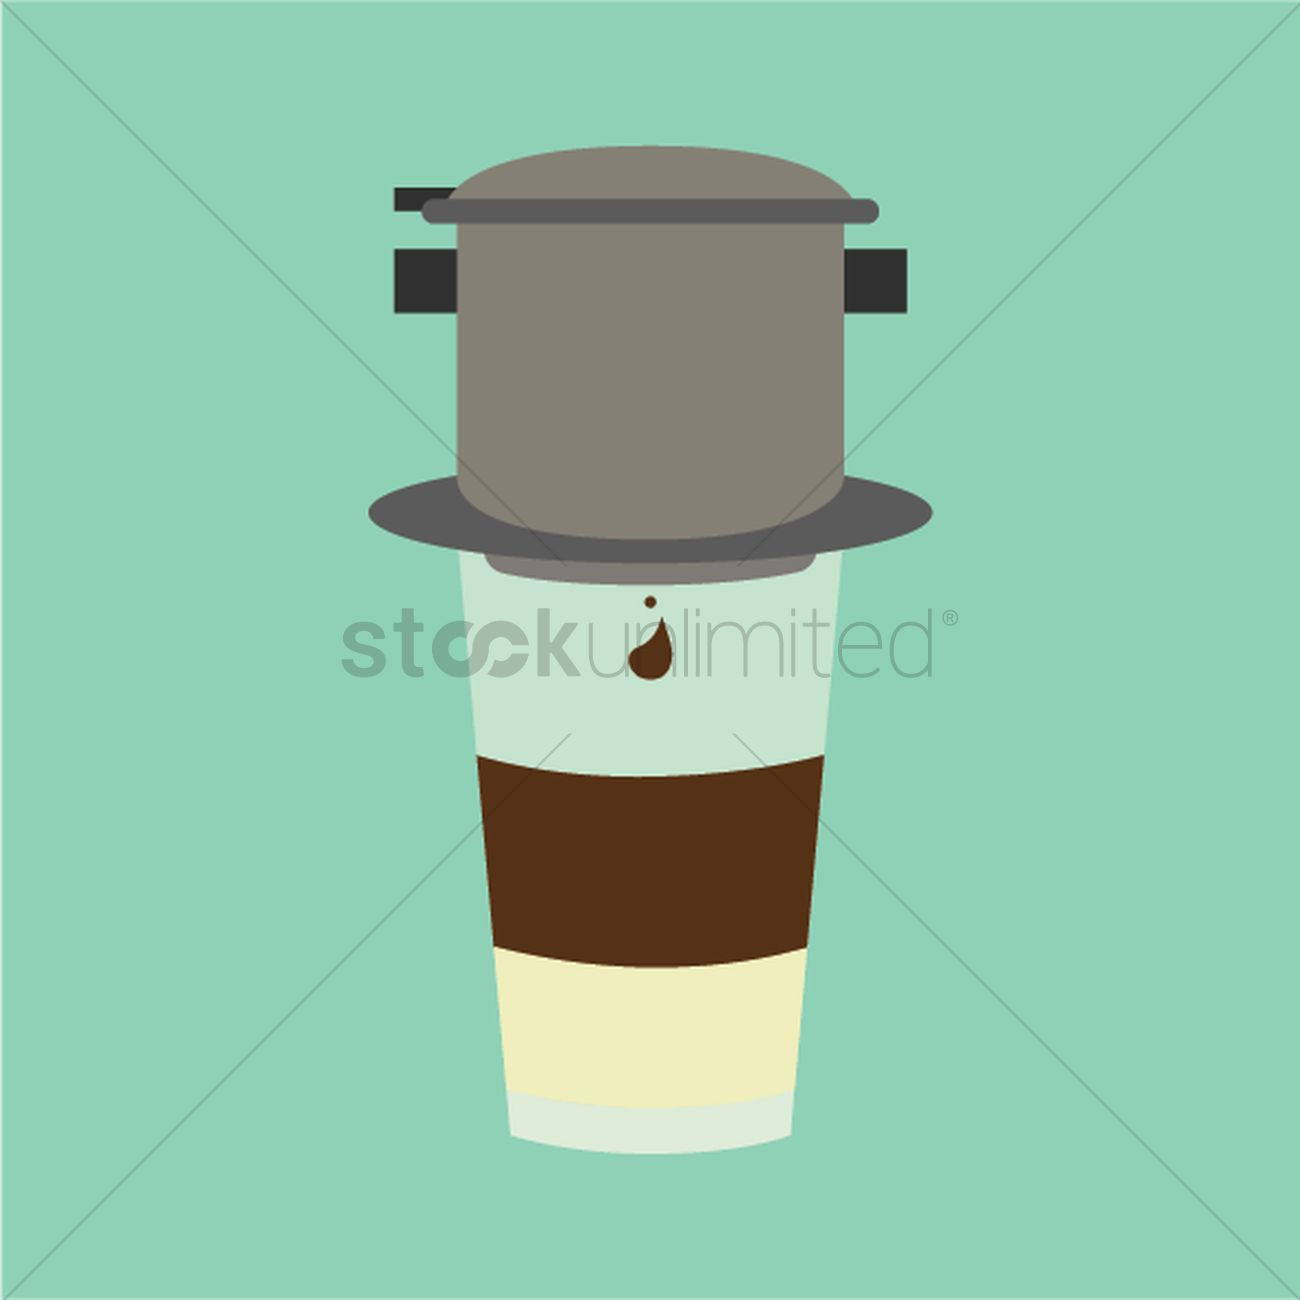 Vietnamese Coffee Vector Image 1532663 Stockunlimited